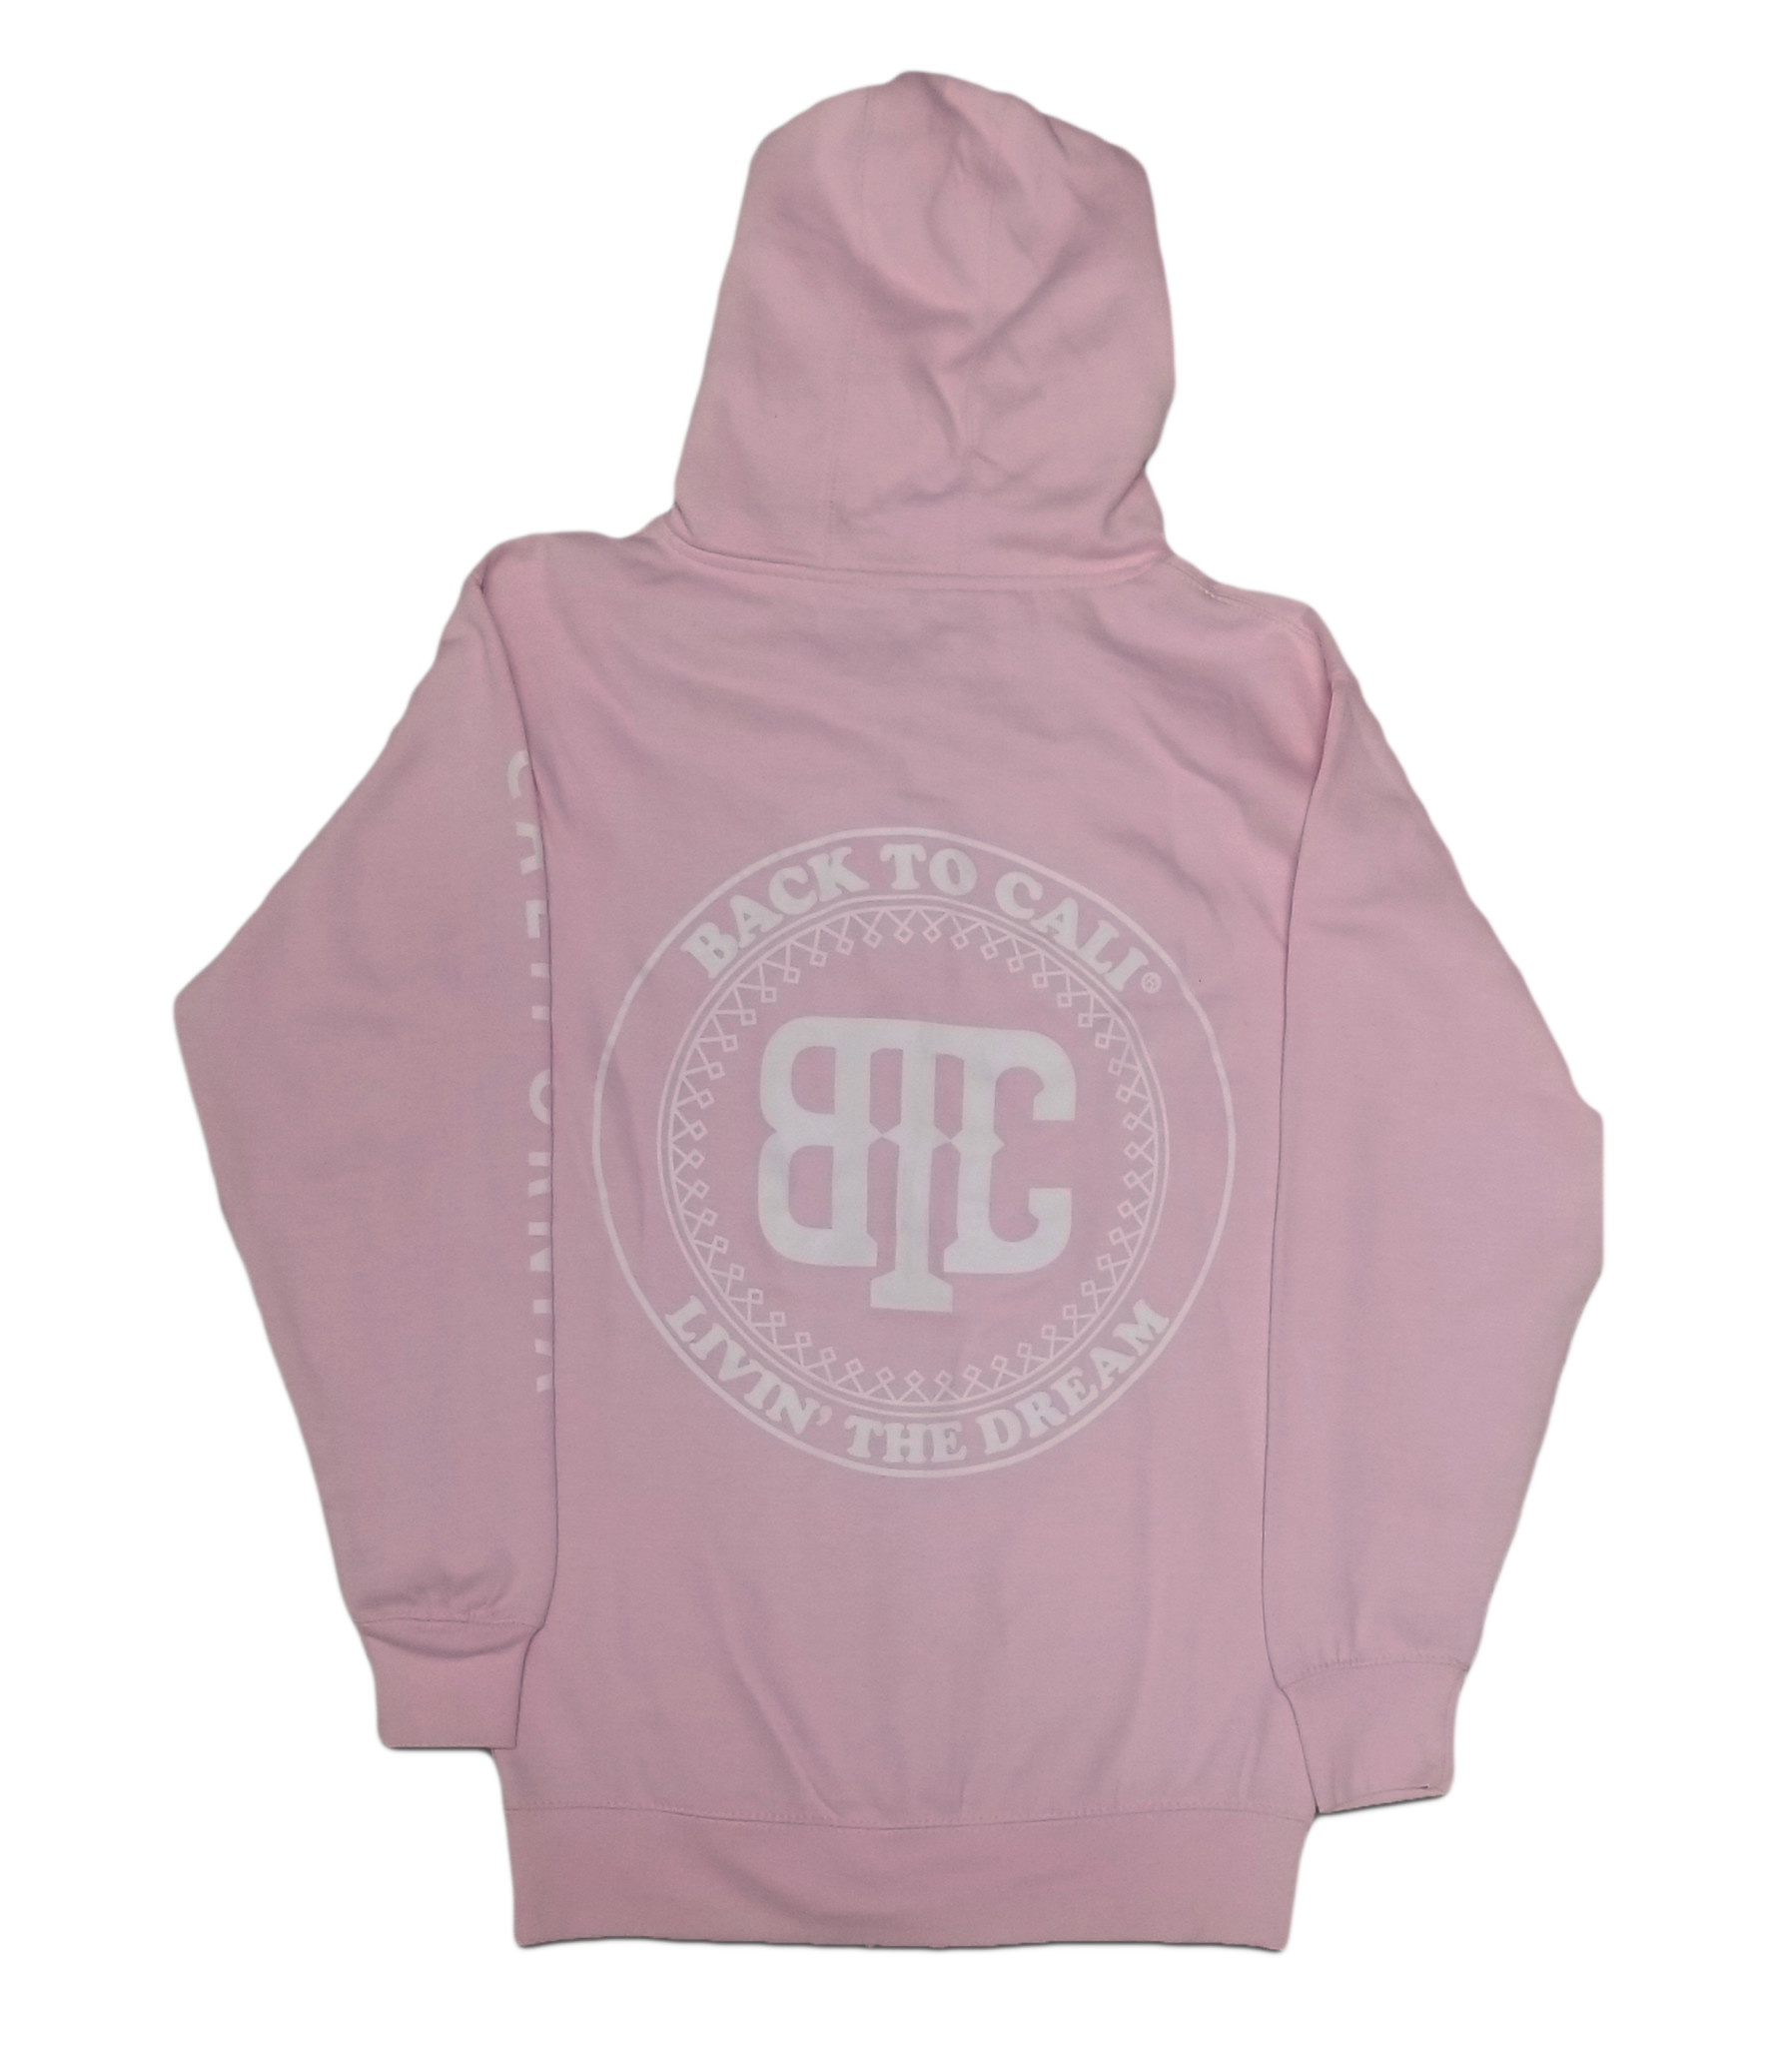 BackToCali Back To Cali Livin the dream Circle Patch - zip up California Pink/Flower